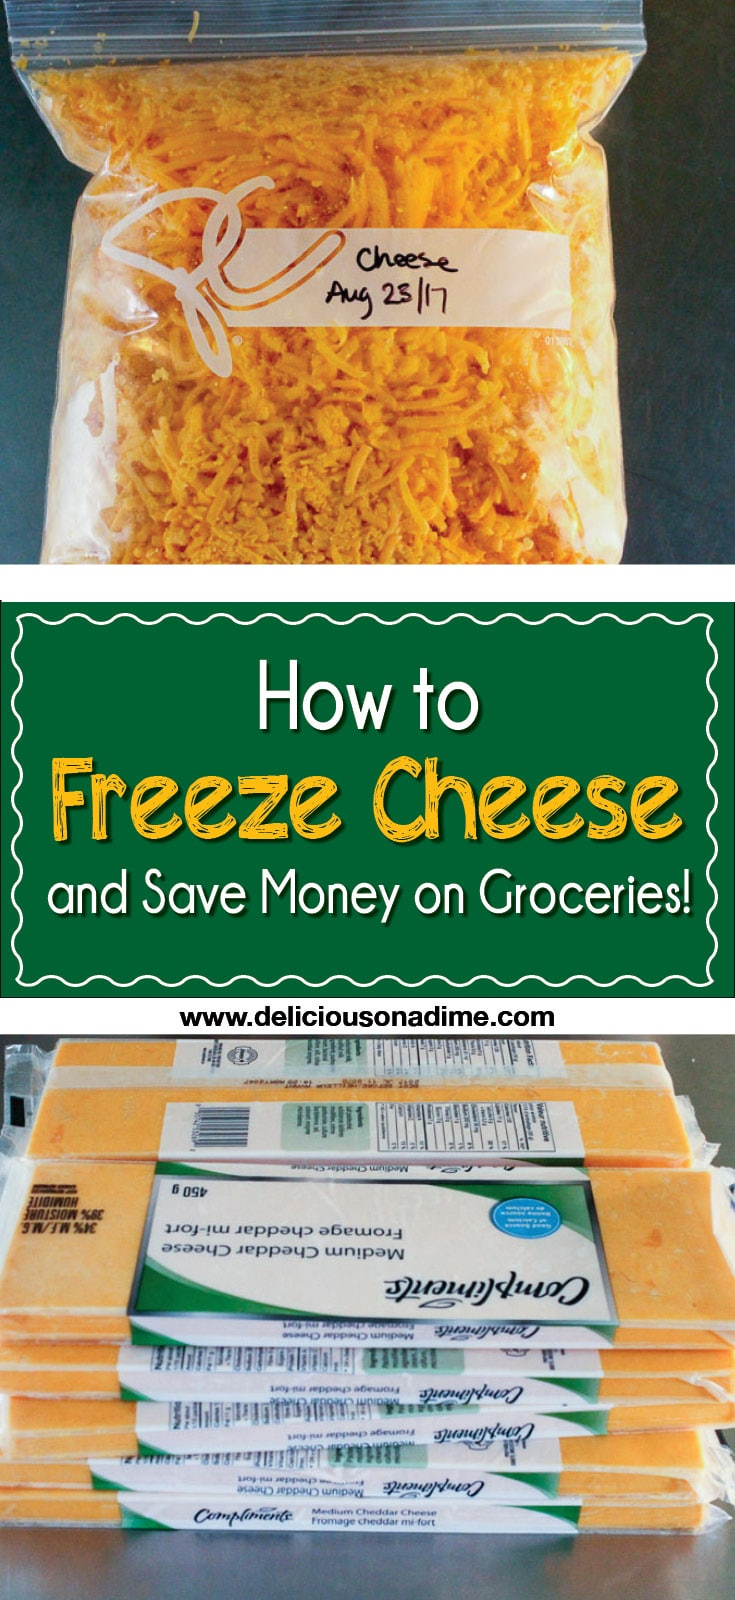 "This quick and easy tip is for any of you who ever wondered, ""Hmmmm... can you freeze cheese?"" Yes, you can freeze cheese, and it's awesome. How to freeze cheese and save money on groceries."